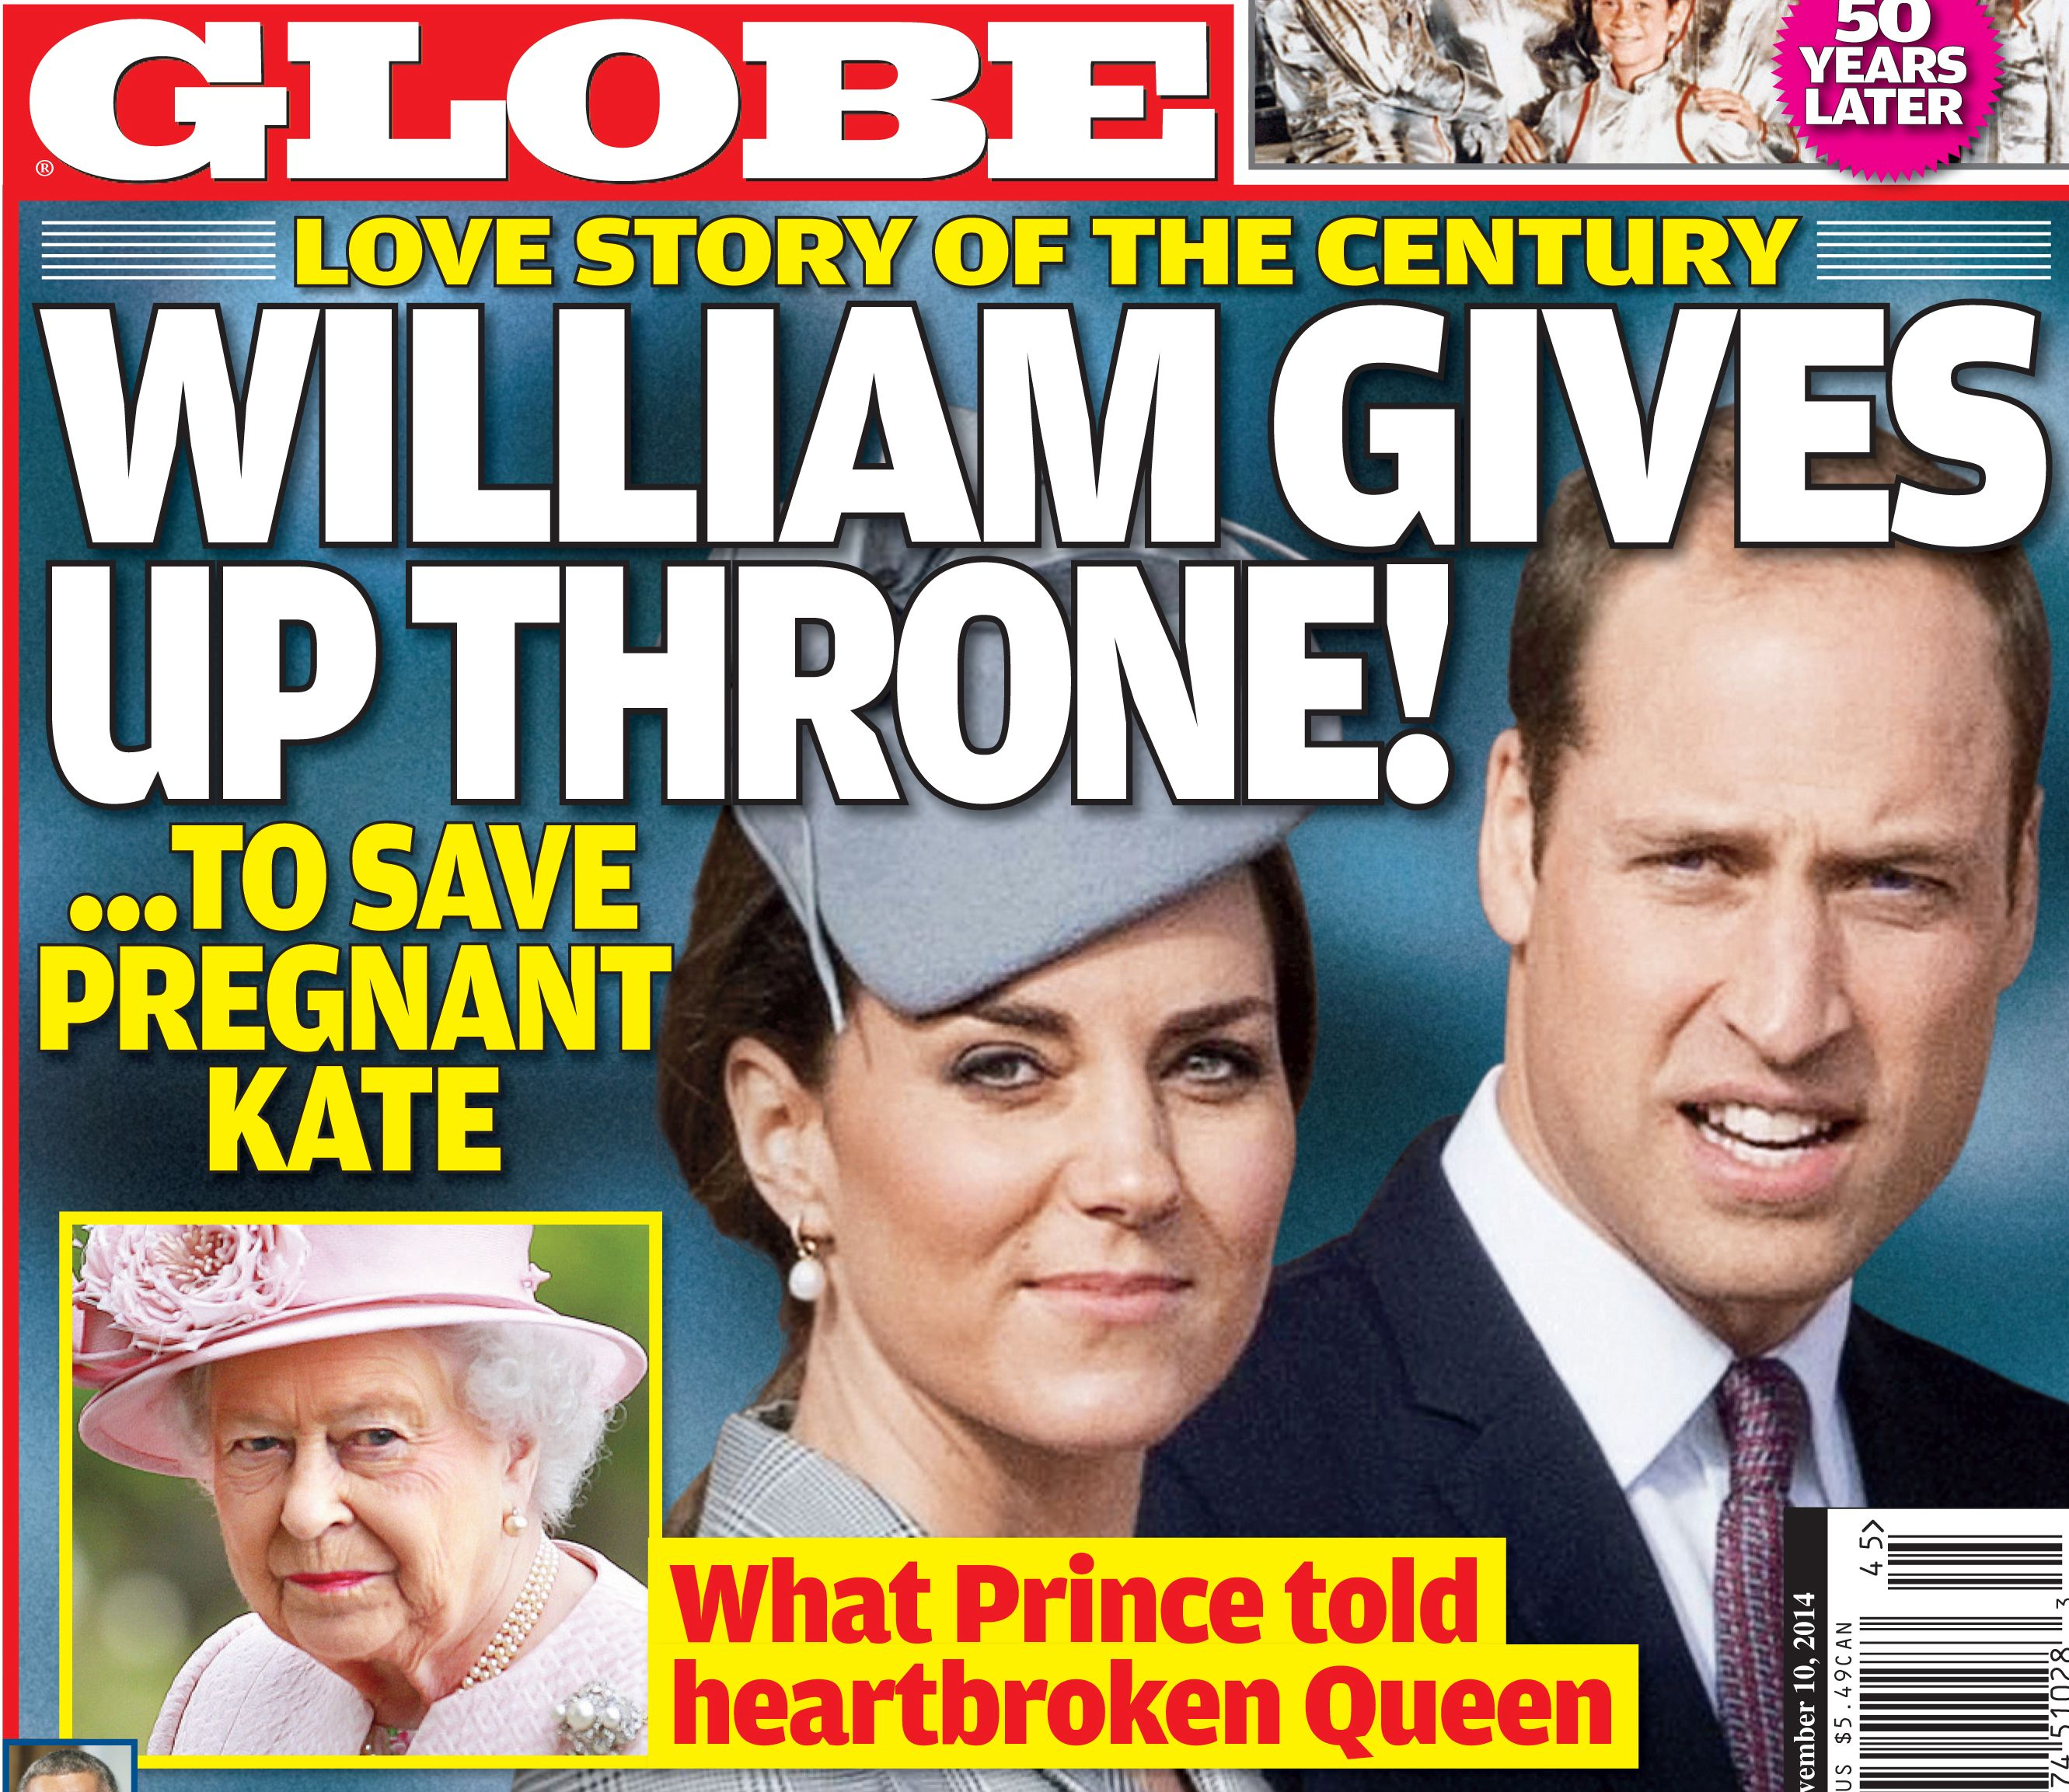 Prince William Rumors William Doesn T Want To Be King Gives Up Throne For Kate